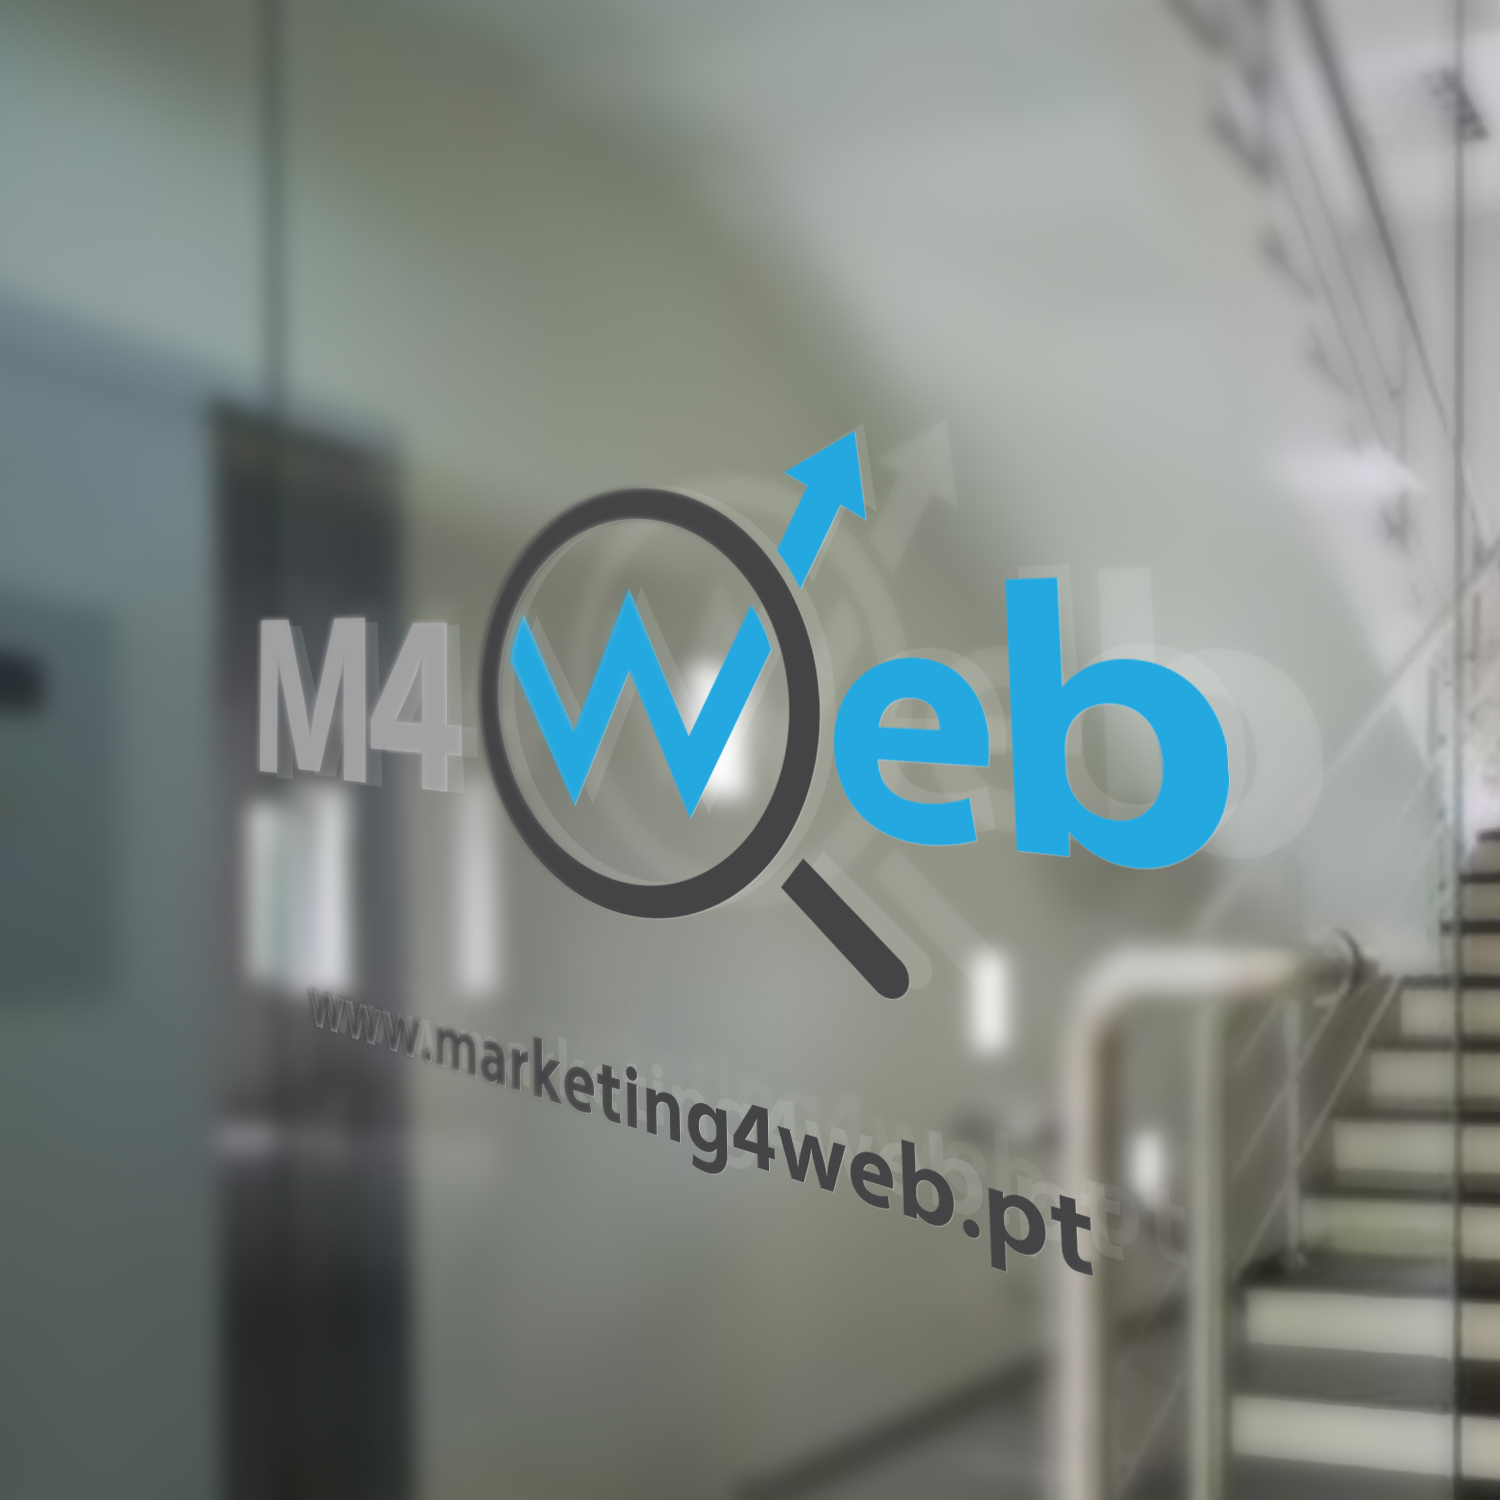 Marketing4web